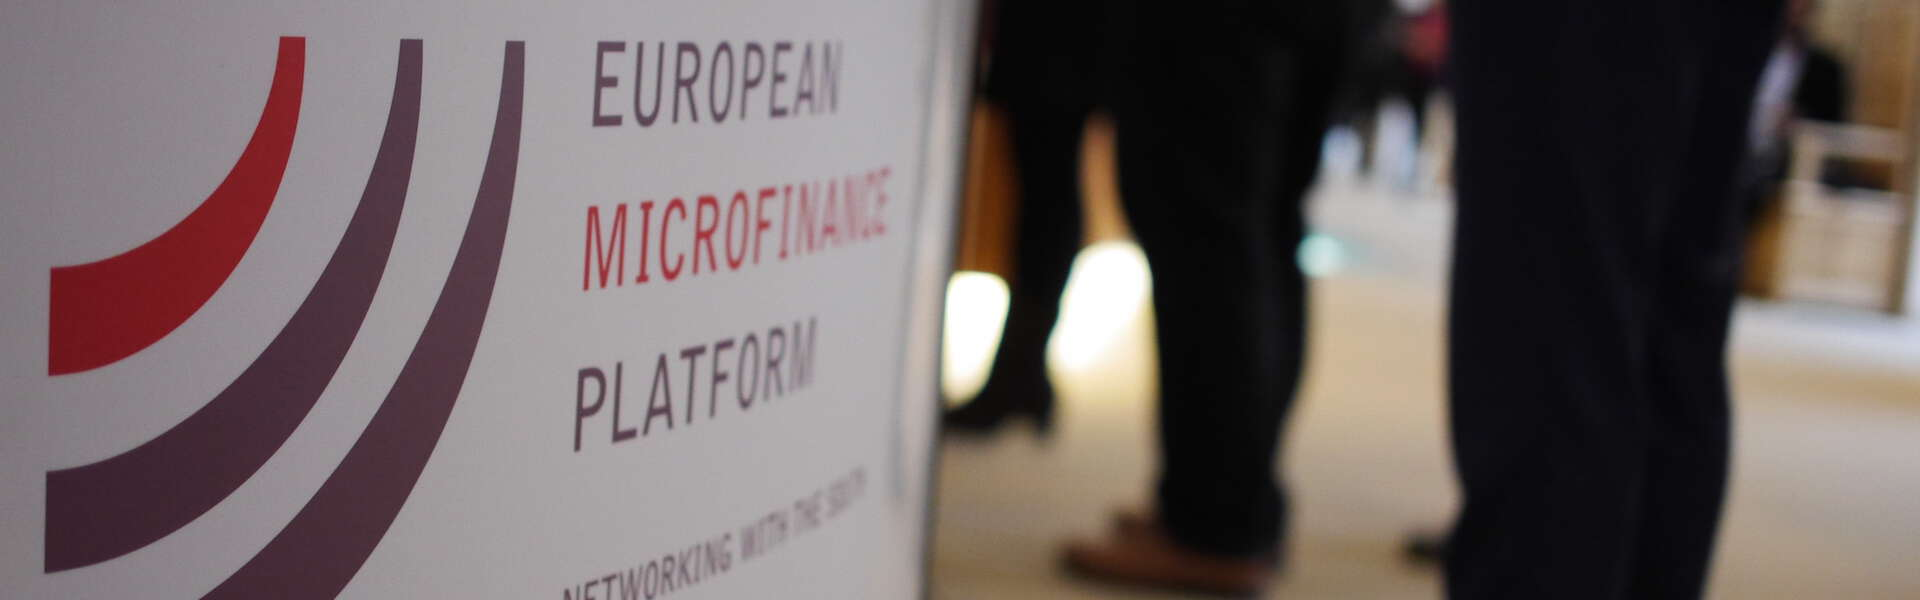 Live from European Microfinance Week: Join Us for Facebook Live Broadcasts of Two Plenary Sessions on Friday